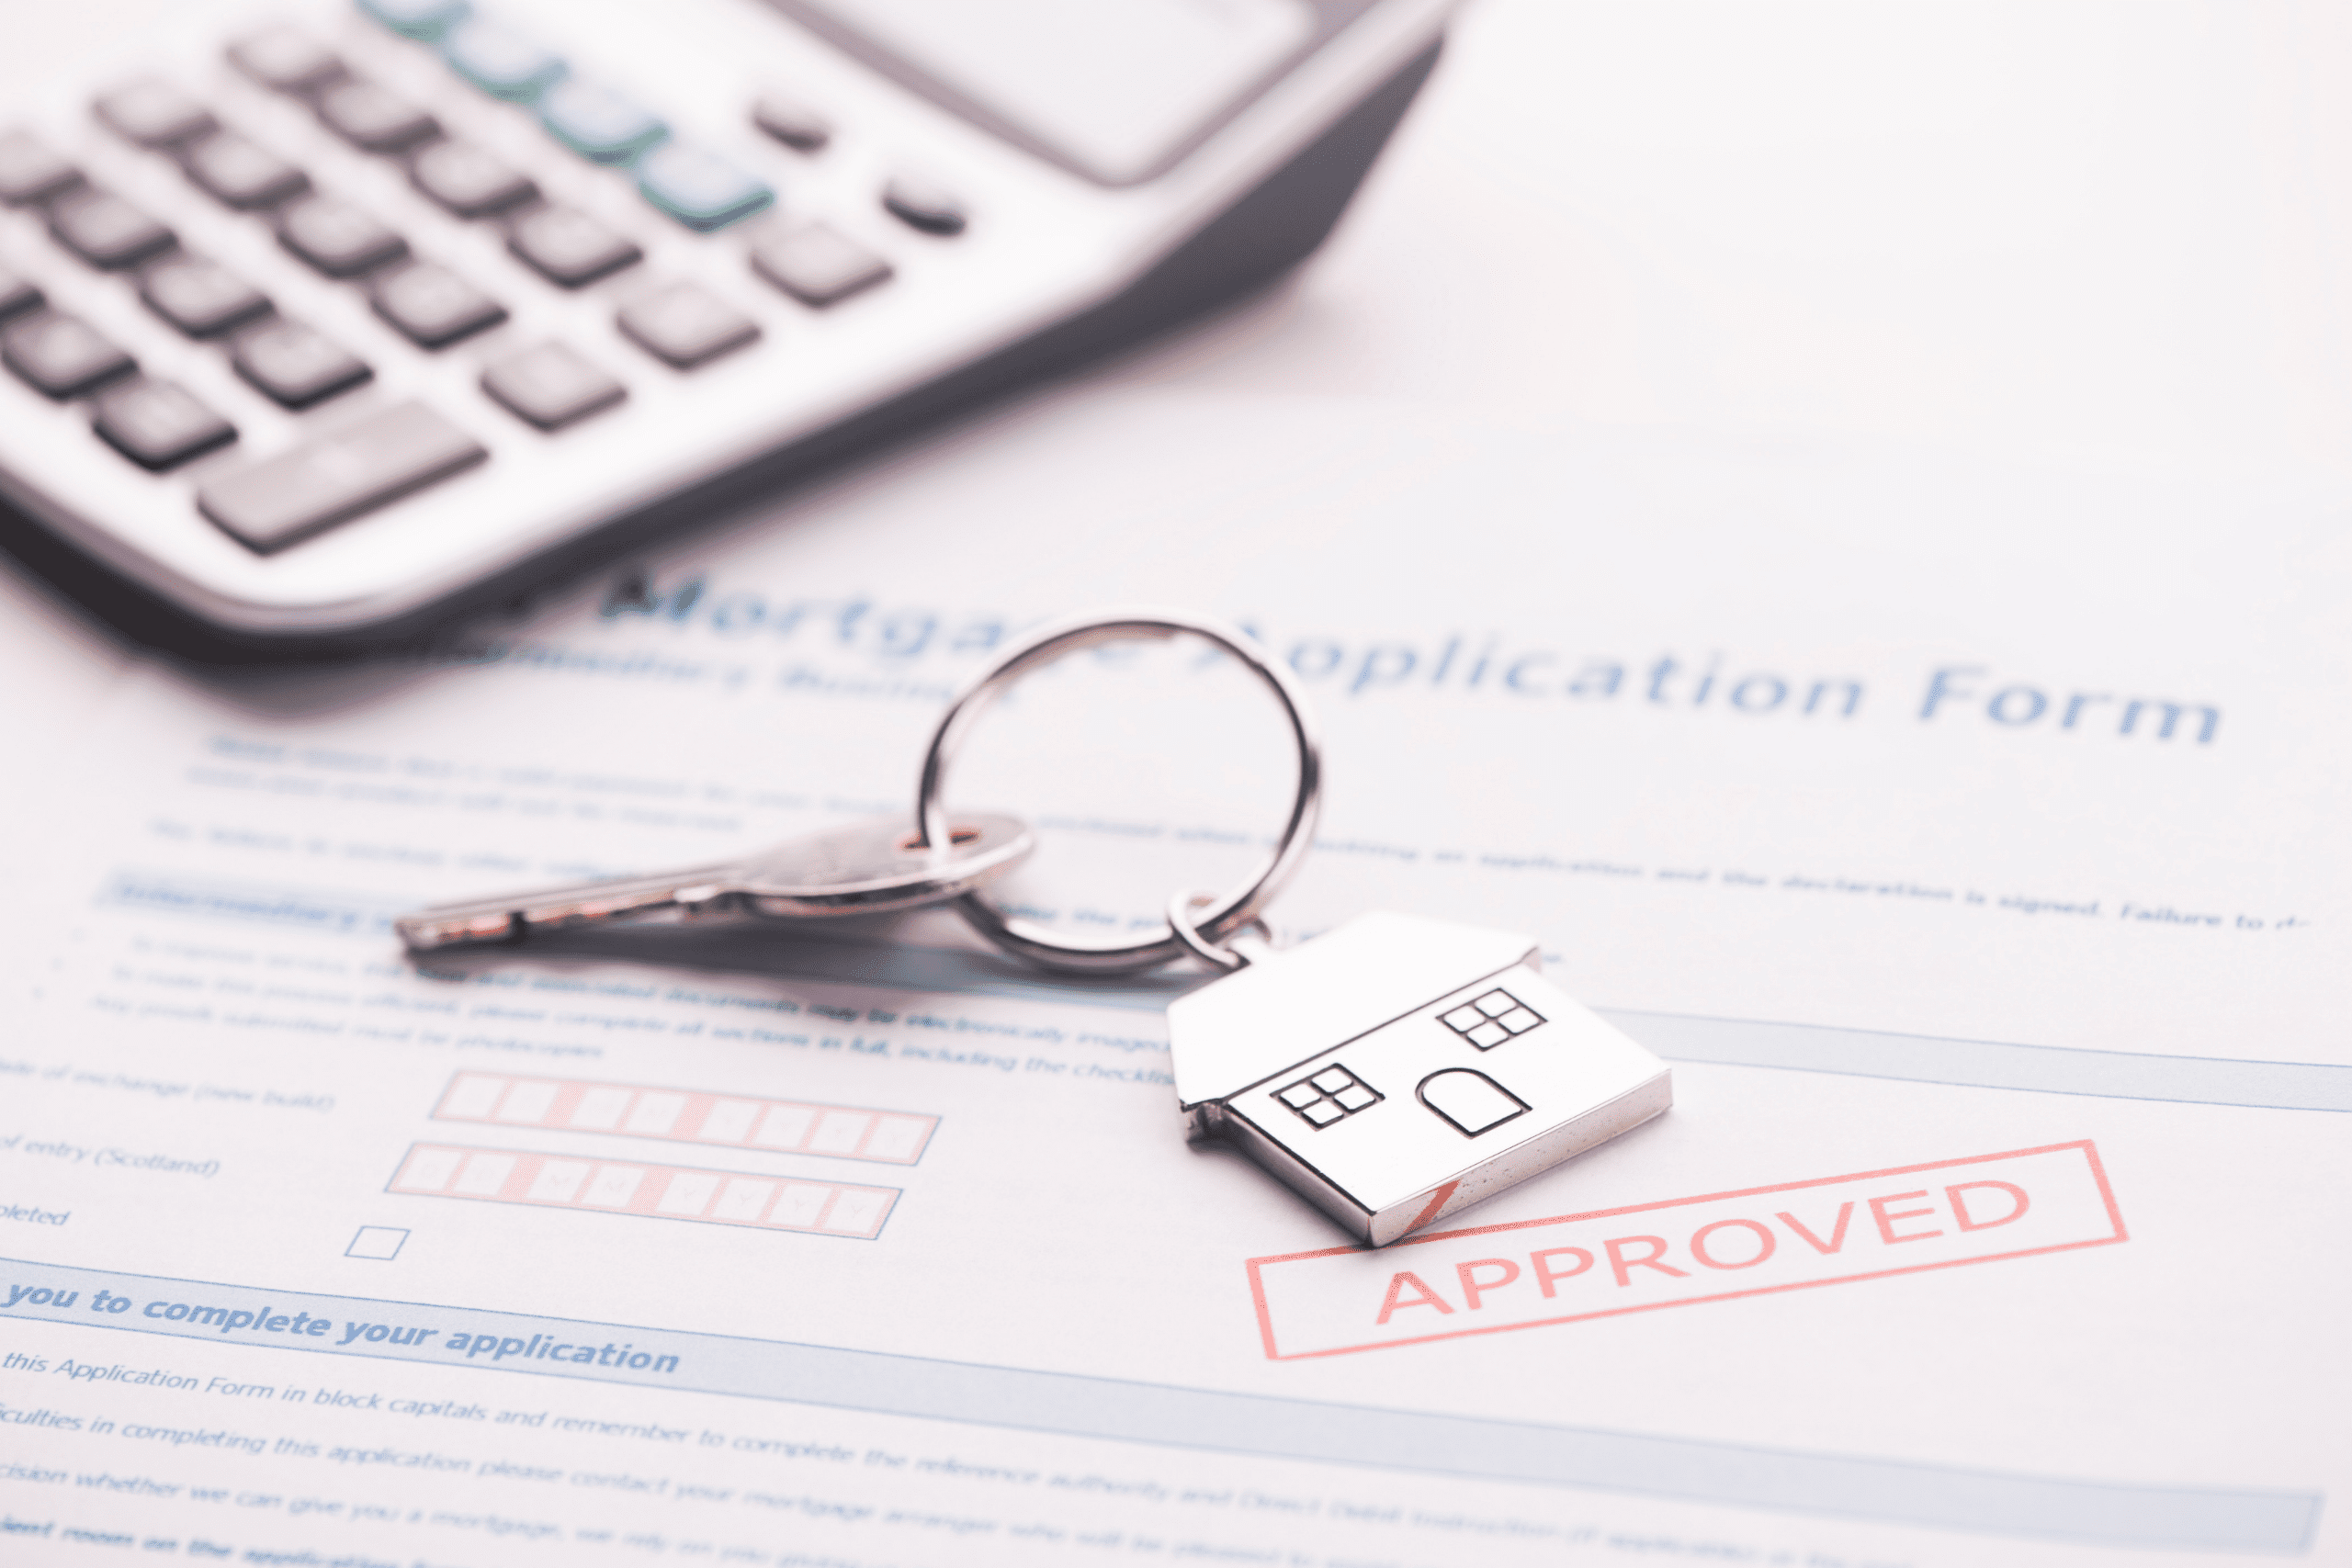 What Do Mortgage Underwriters Look for and What's Their Process?